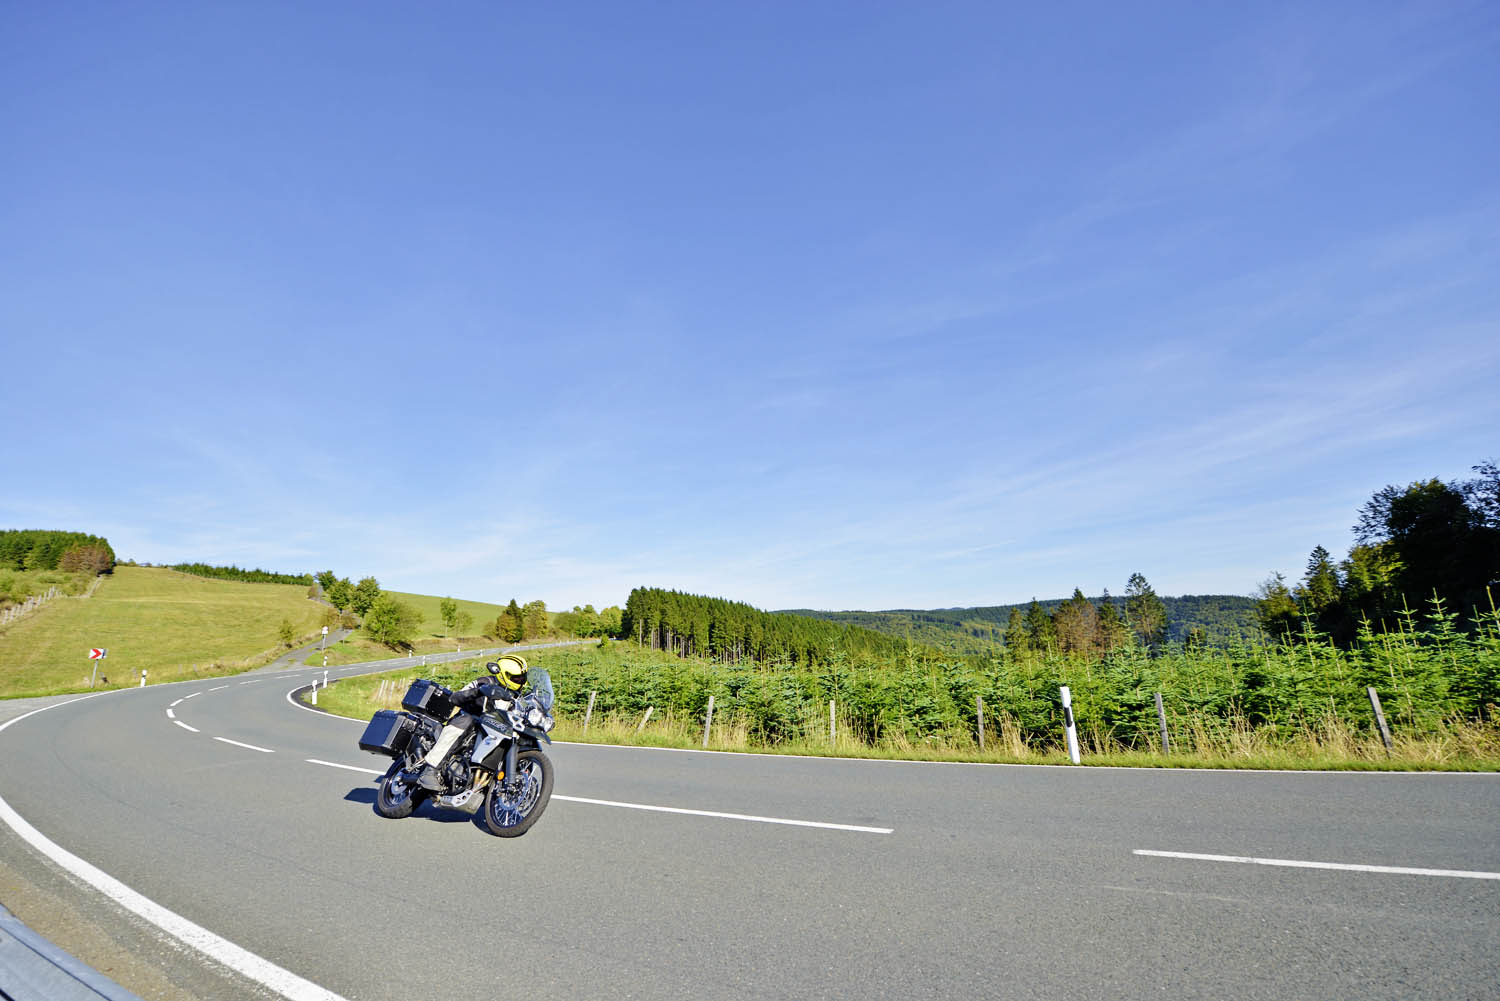 Just hours from the port, you'll be amazed by what the roads of Northern Germany can offer